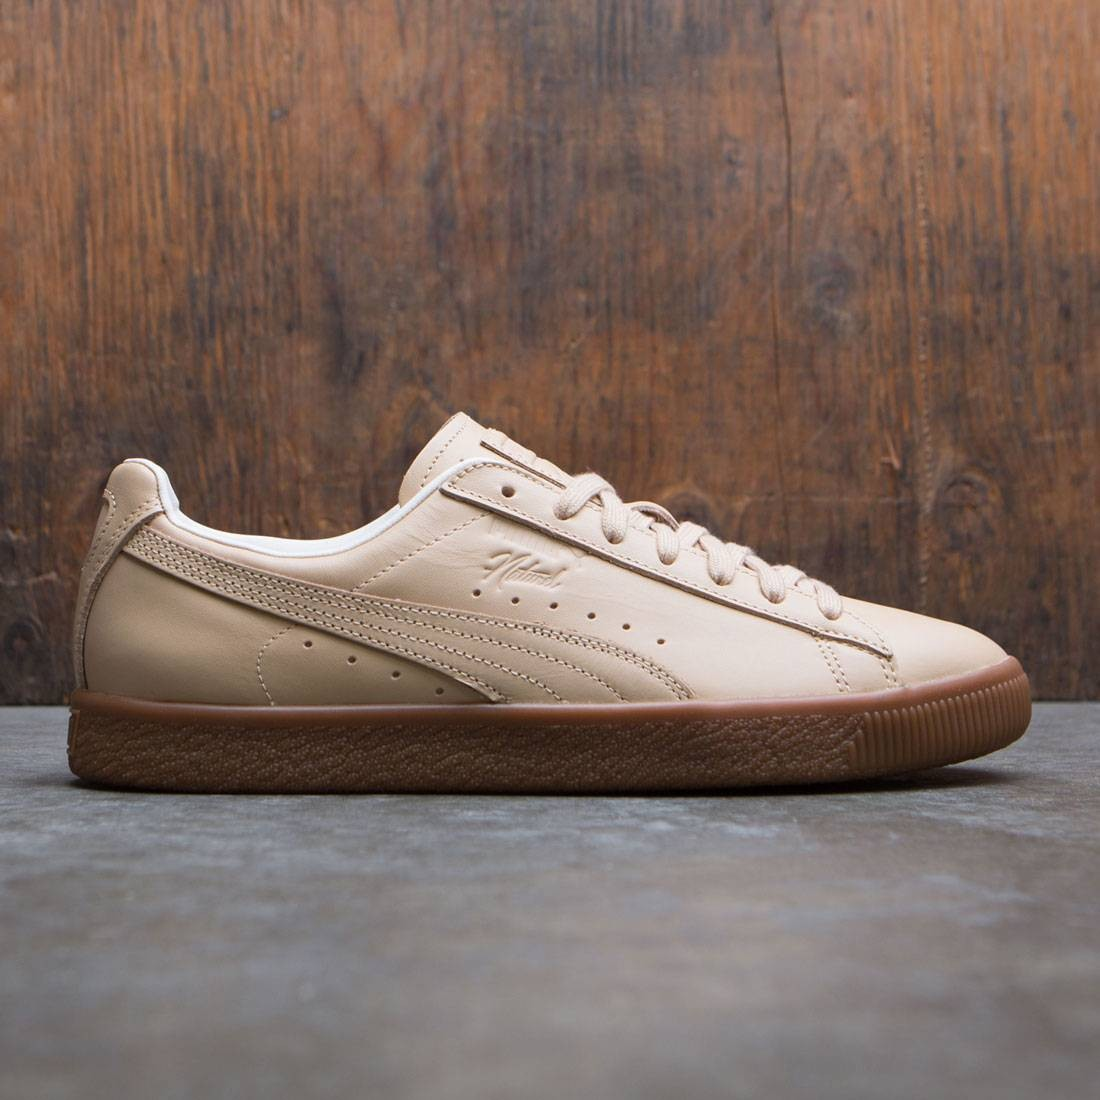 promo code a923d f323a Puma x Naturel Men Clyde - Veg Tan (brown / natural vachetta)